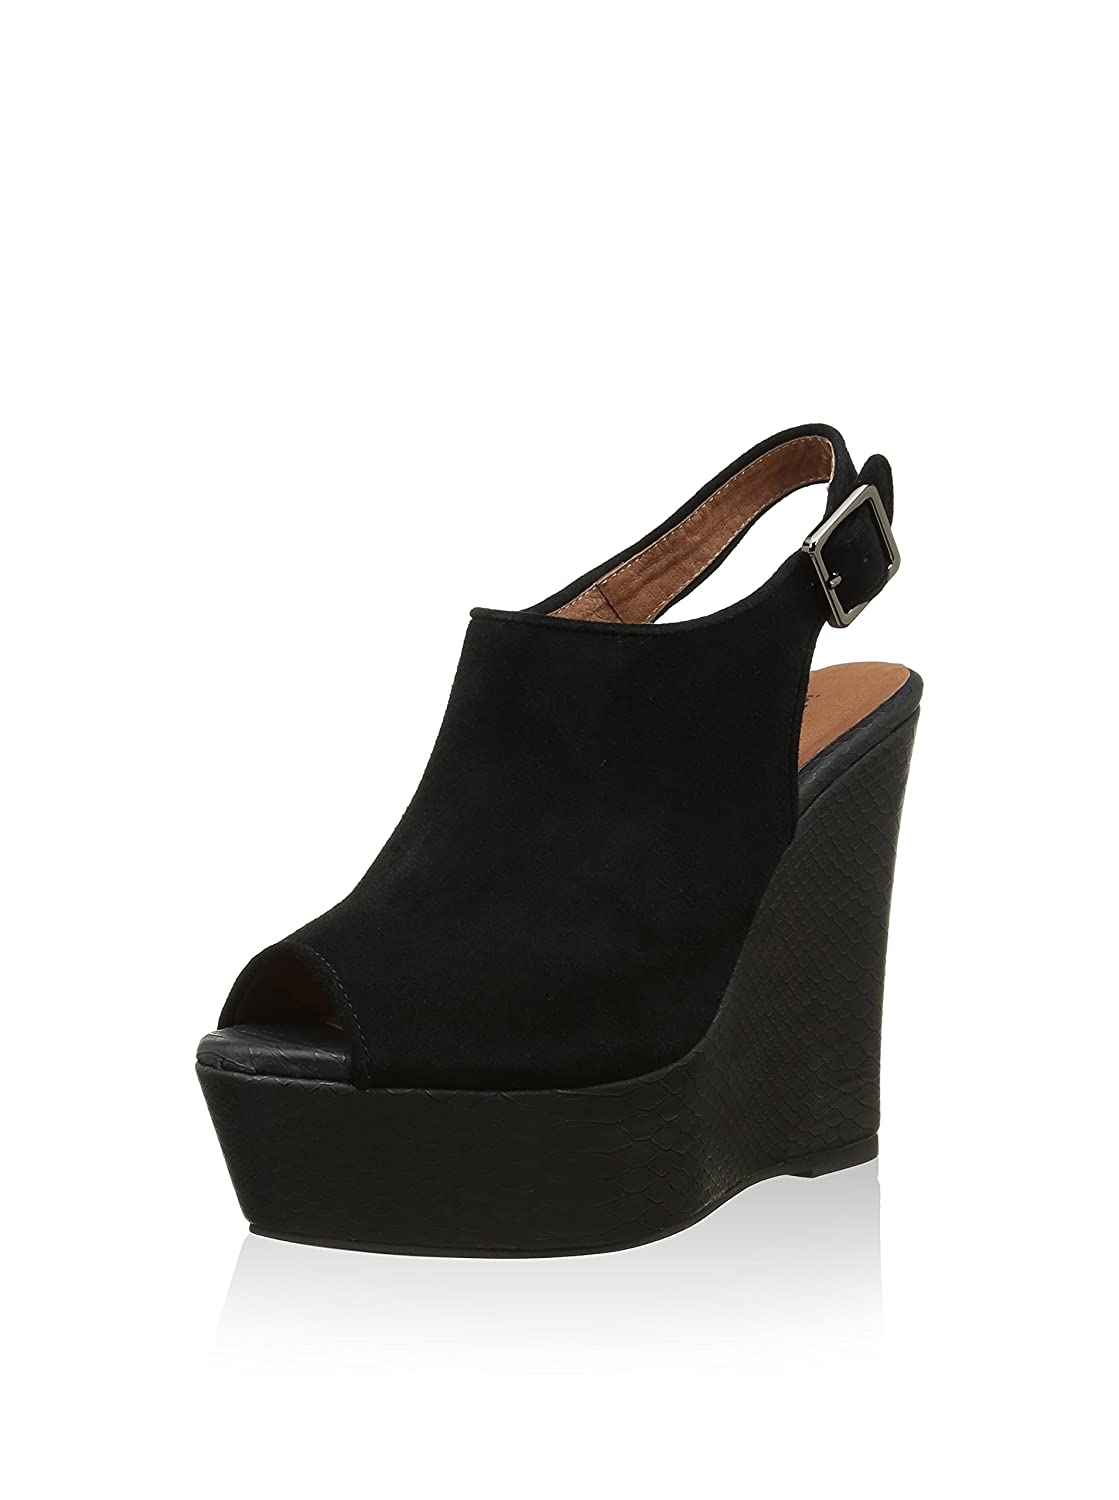 Jeffrey Campbell Dexter wedge sandal in black suede